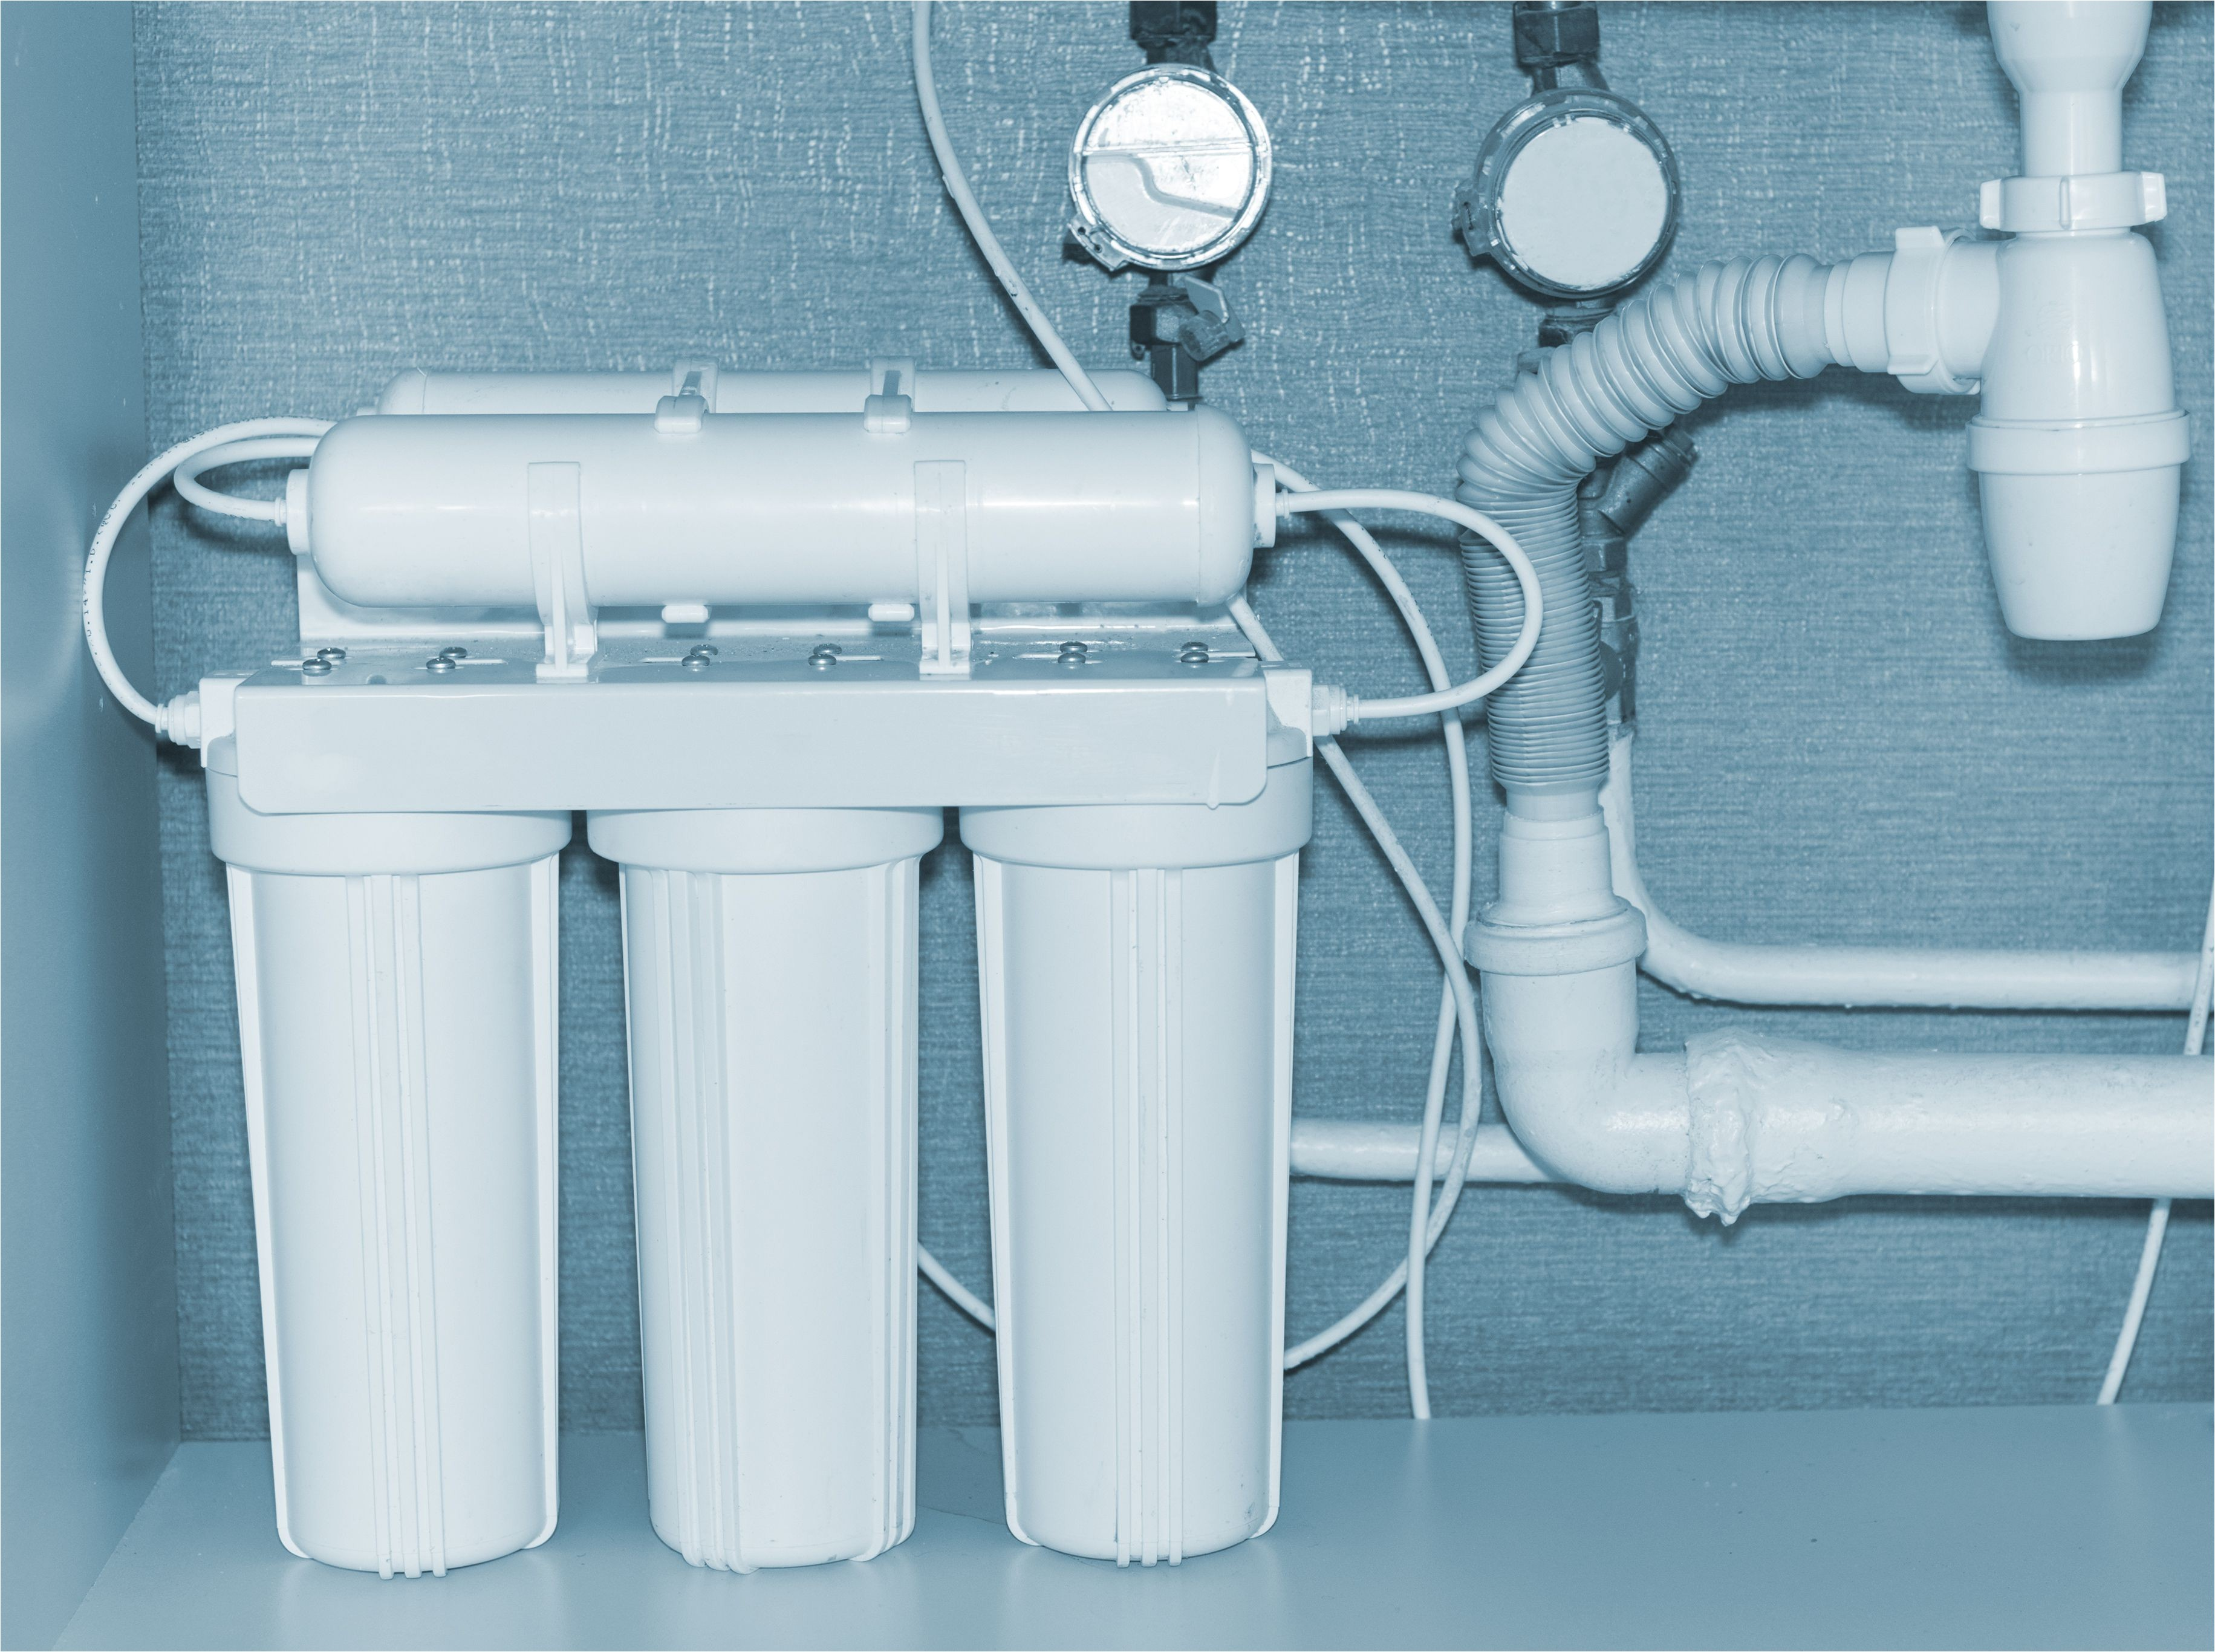 reverse osmosis water purification system 822463366 5ab1833d1d64040036e738a3 jpg